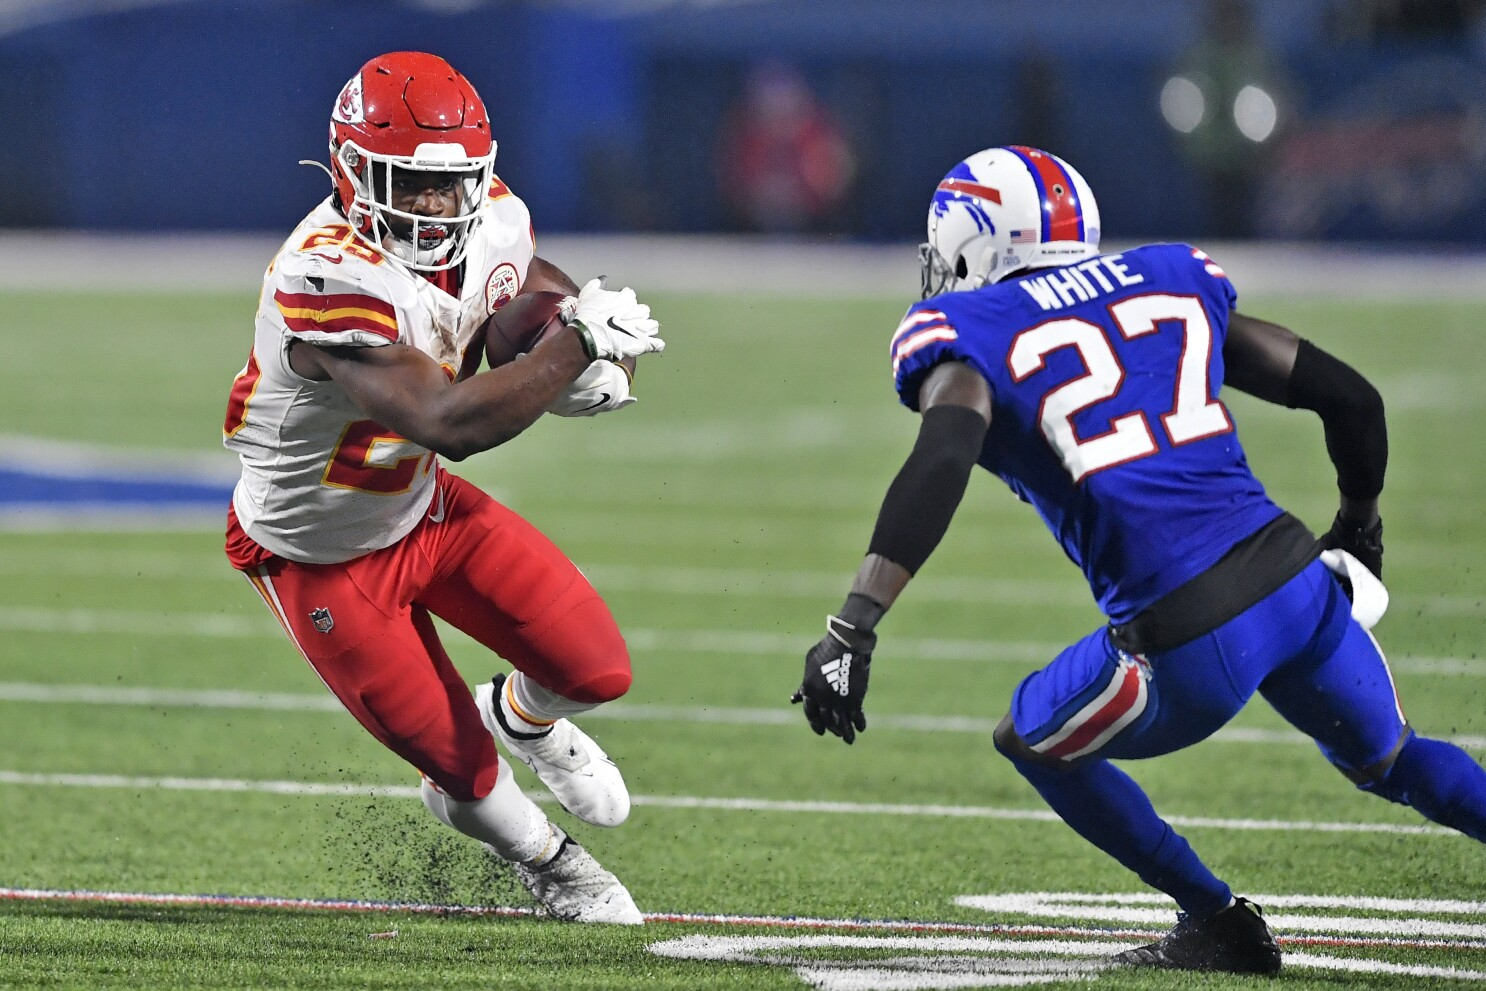 NFL: Chiefs, Clyde Edwards-Helaire run away with win over Bills; Cardinals  rout Cowboys - Los Angeles Times